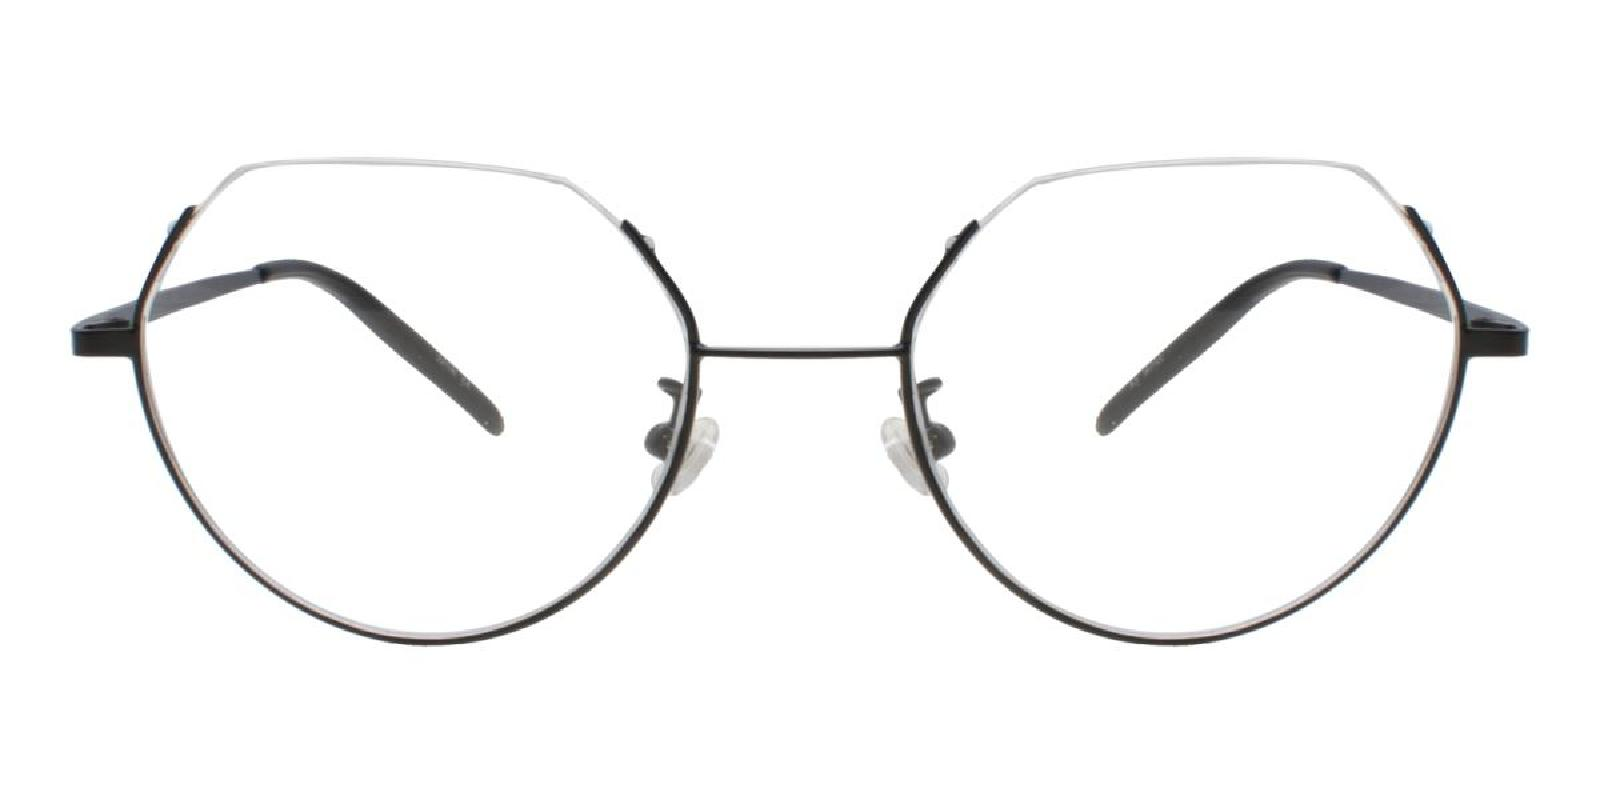 Hudson-Black-Geometric-Metal-Eyeglasses-additional2